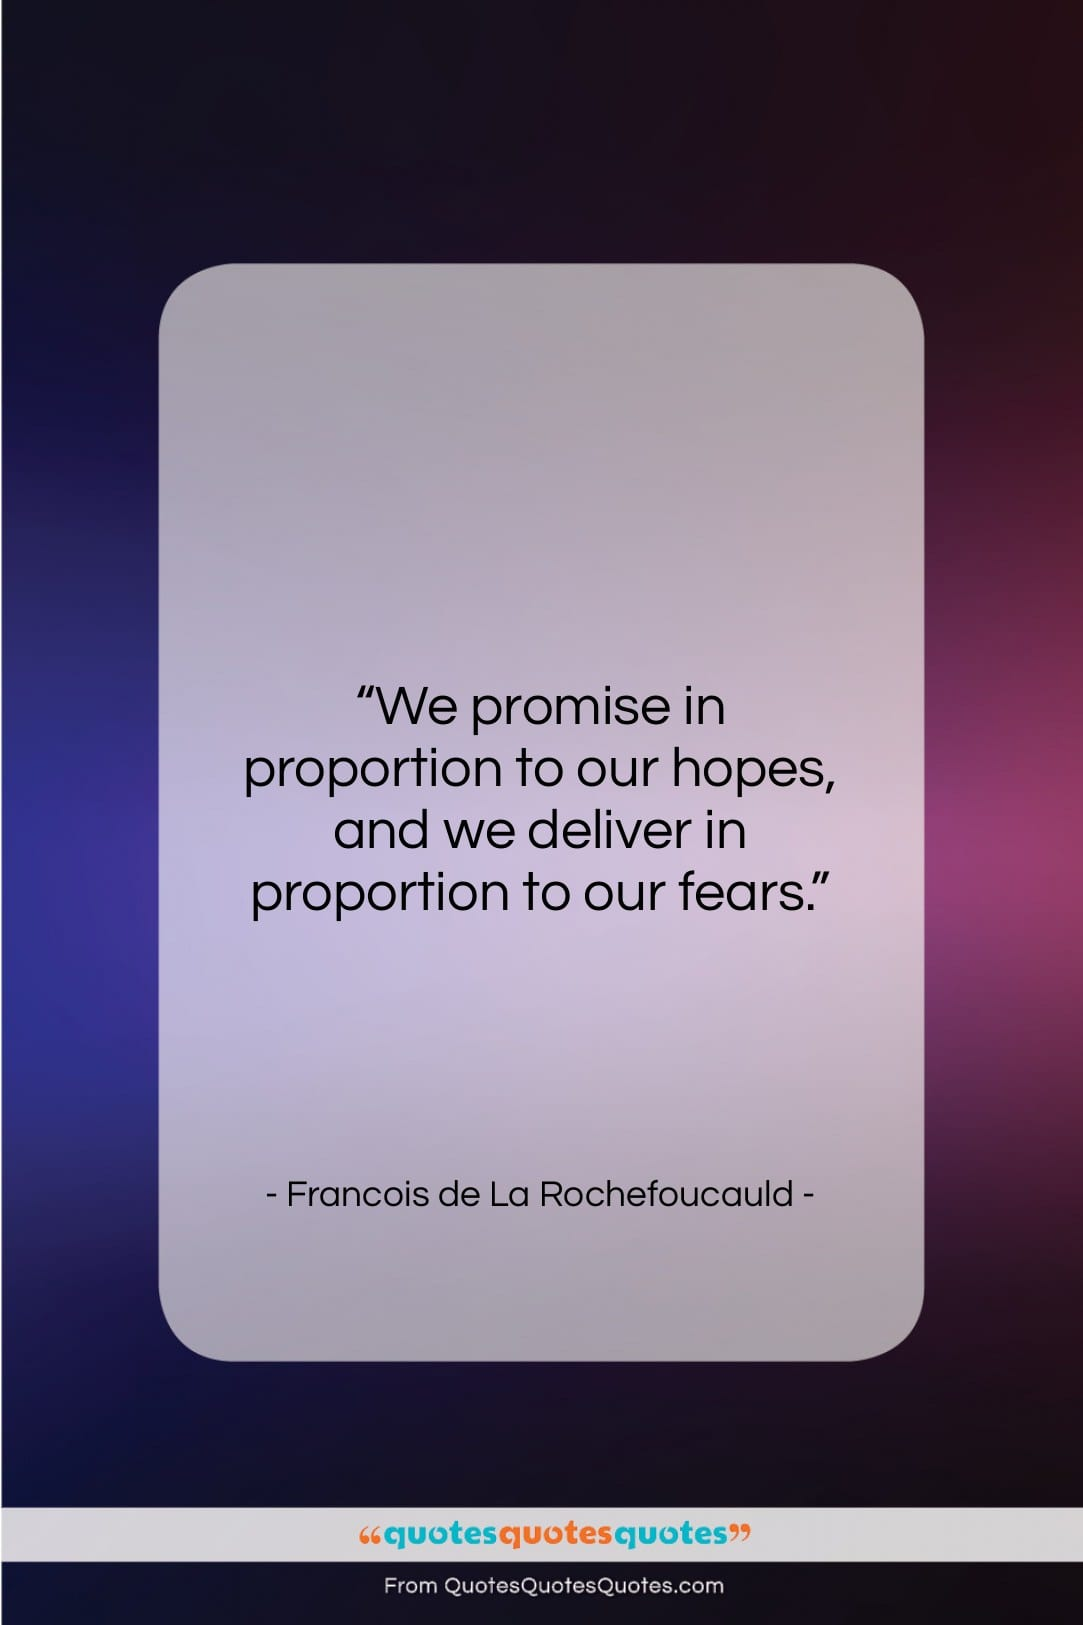 """Francois de La Rochefoucauld quote: """"We promise in proportion to our hopes,…""""- at QuotesQuotesQuotes.com"""